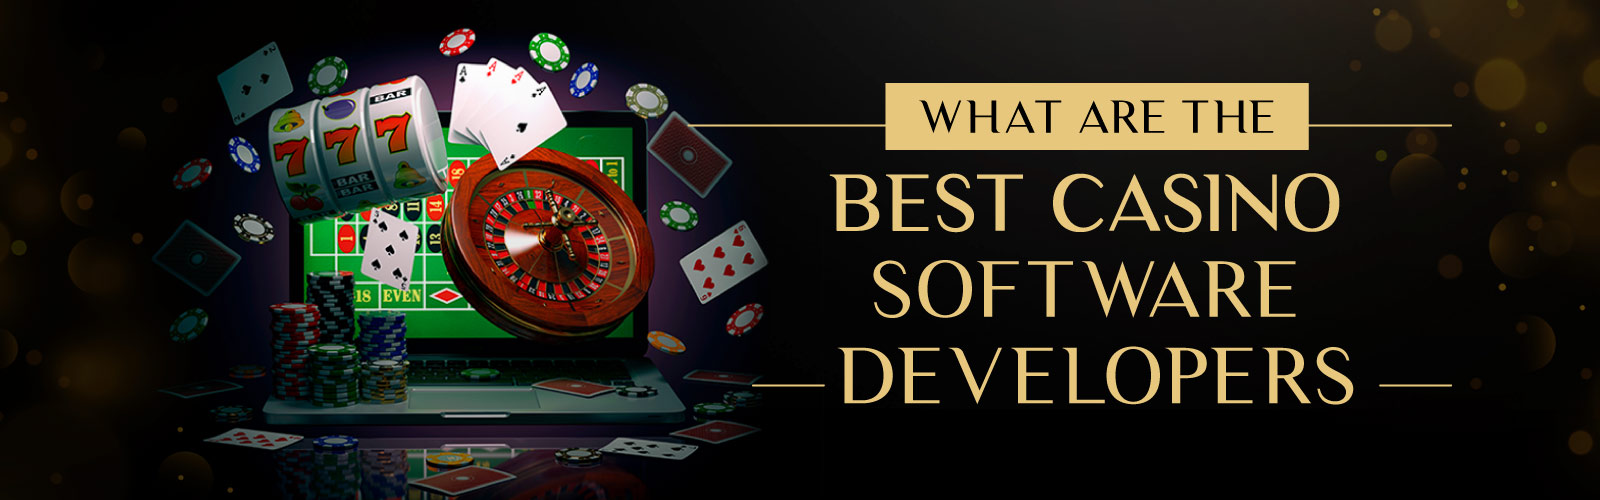 best online casino game software developers